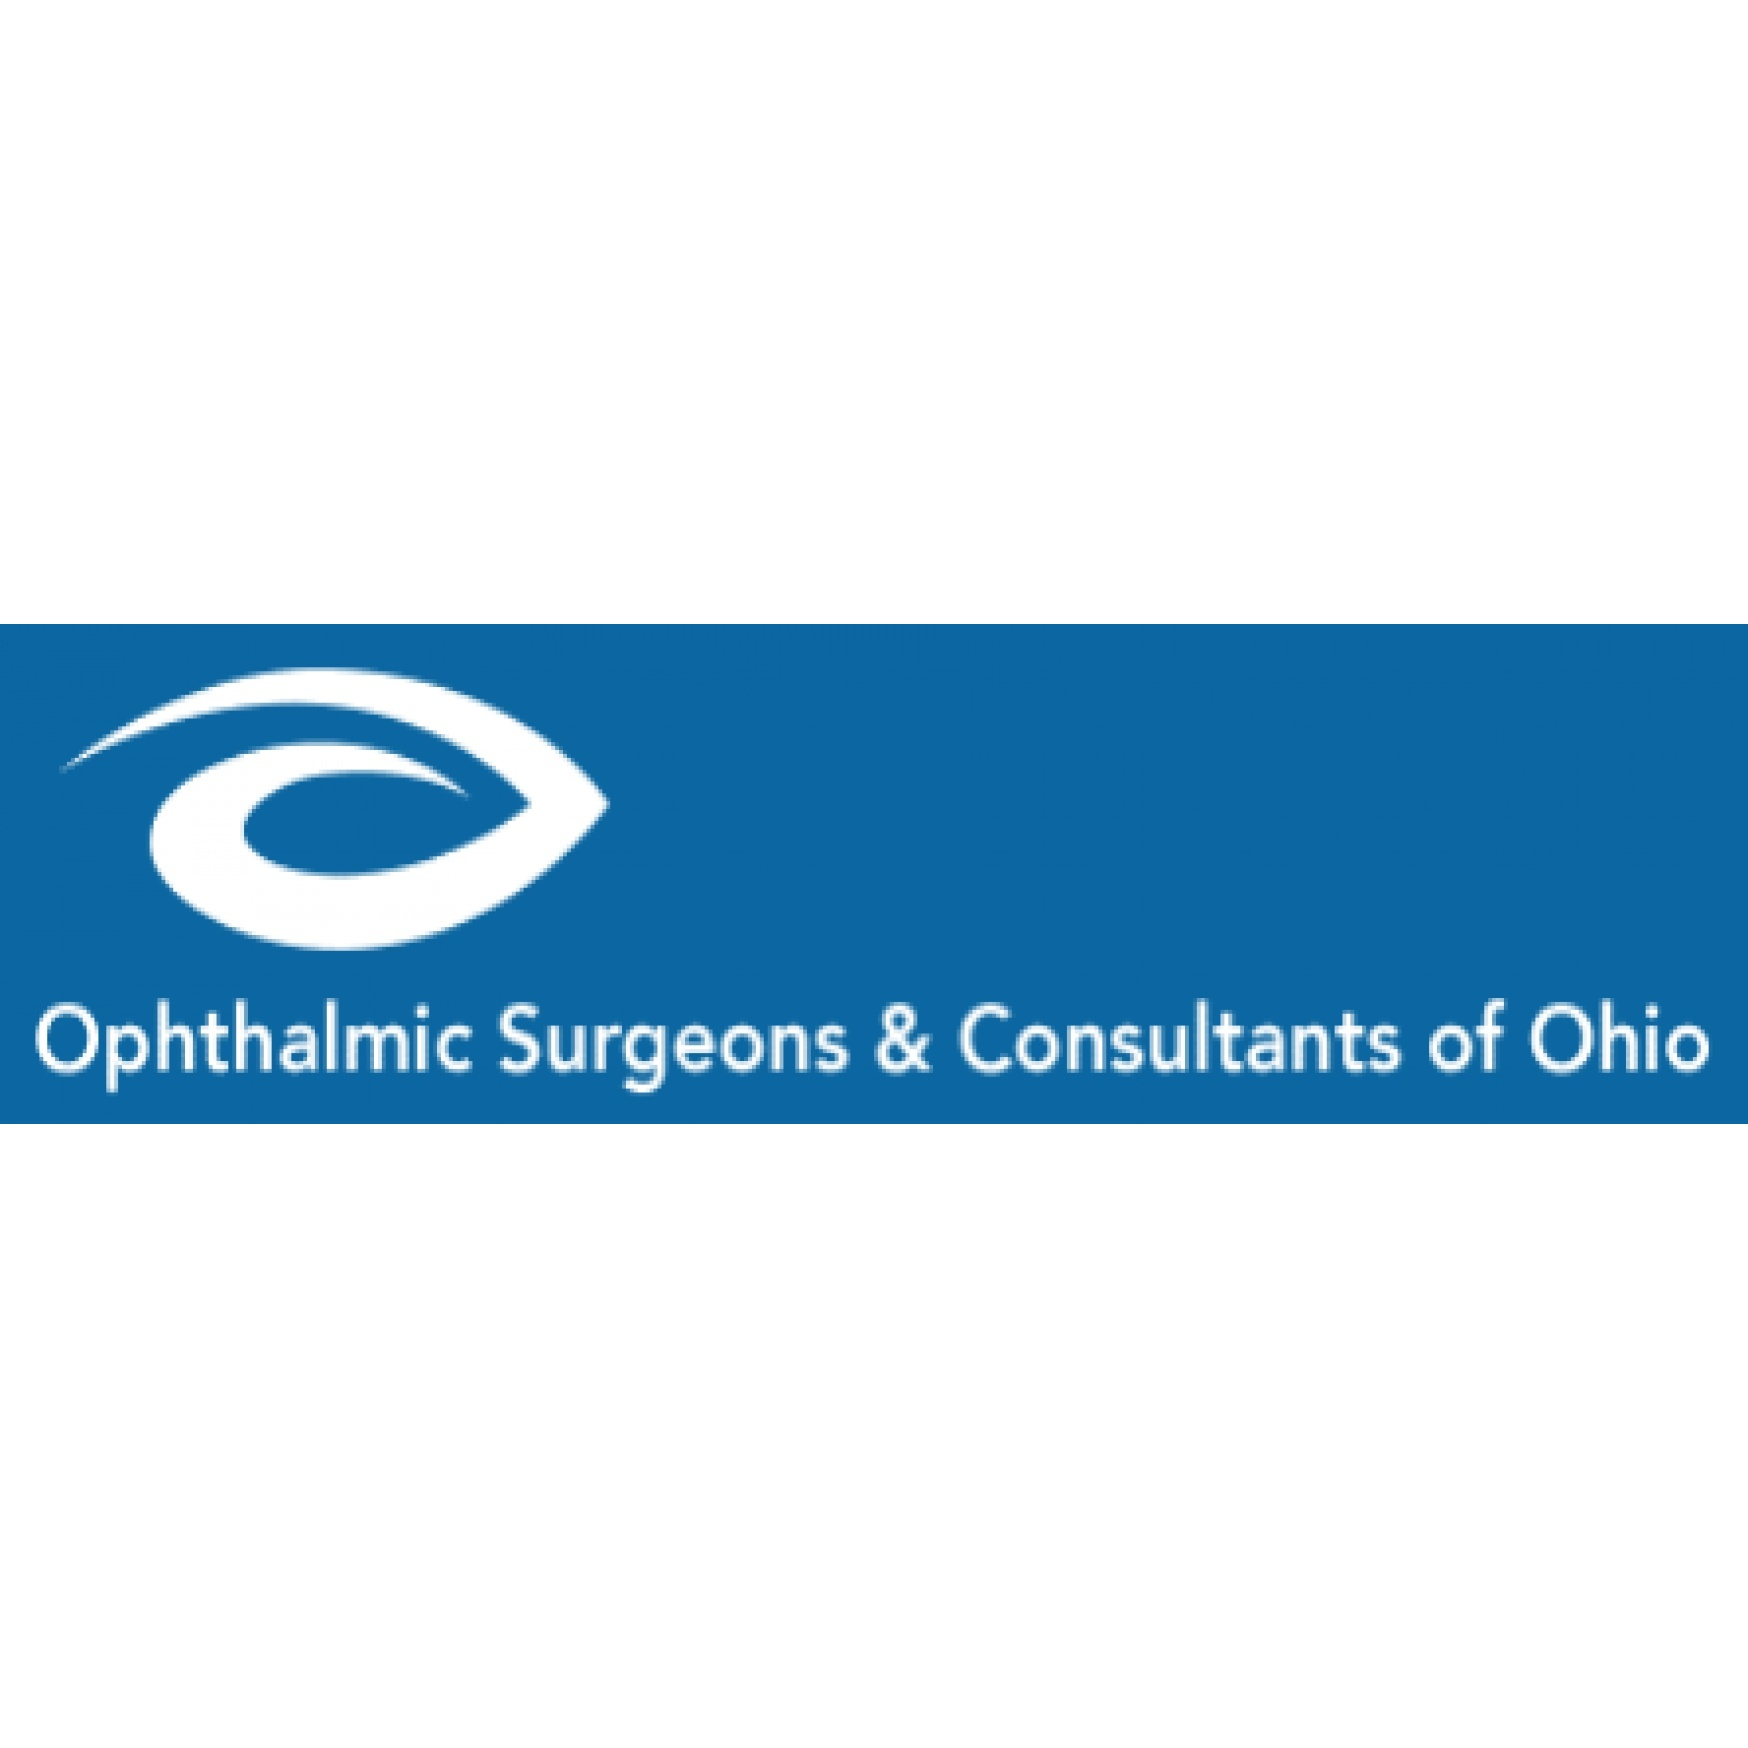 Ophthalmic Surgeons and Consultants of Ohio image 1